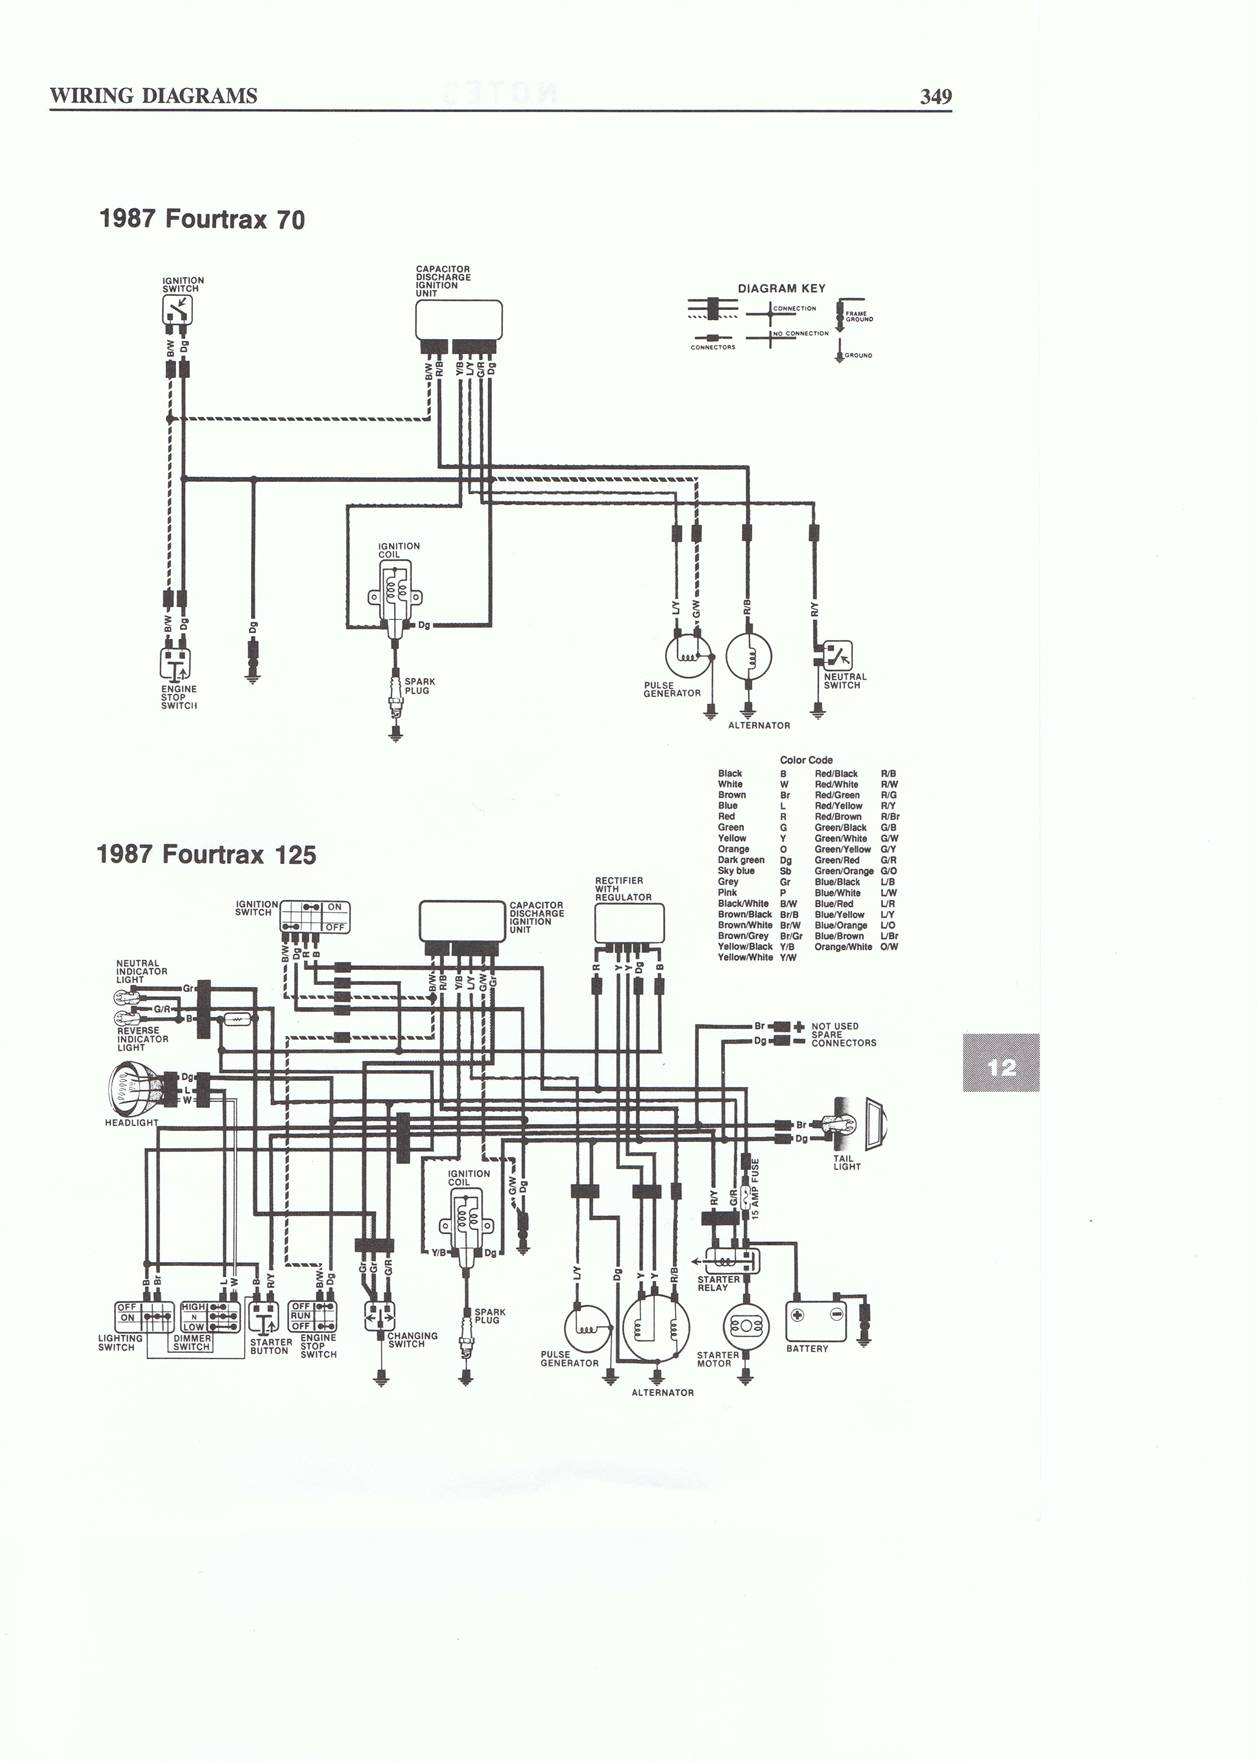 gy6 engine wiring diagram?t=1398725710 gy6 engine wiring diagram gy6 wiring schematic at bakdesigns.co